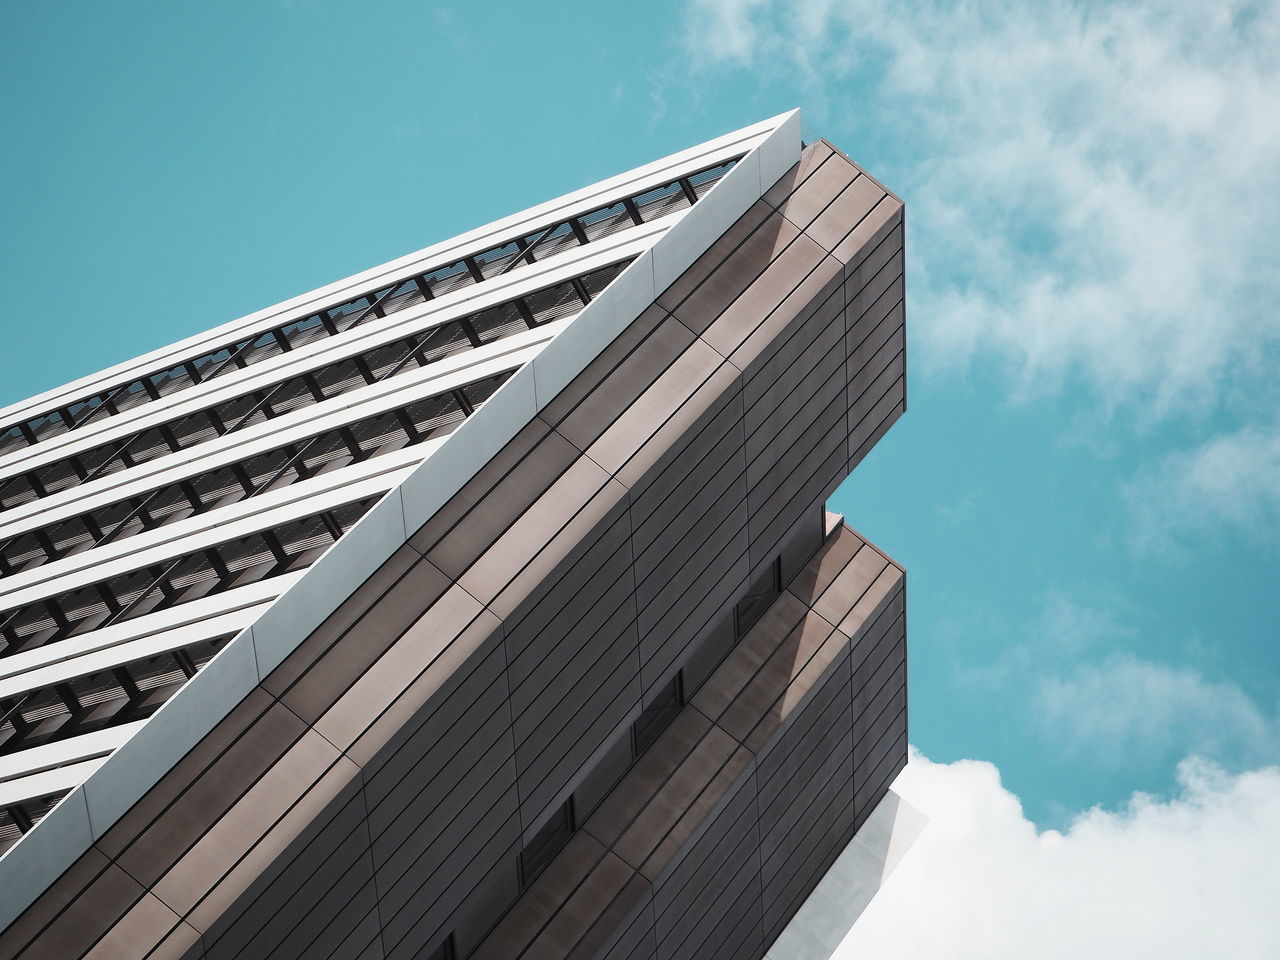 Architecture Building Exterior Built Structure Clouds Day Façade Low Angle View Modern Sky